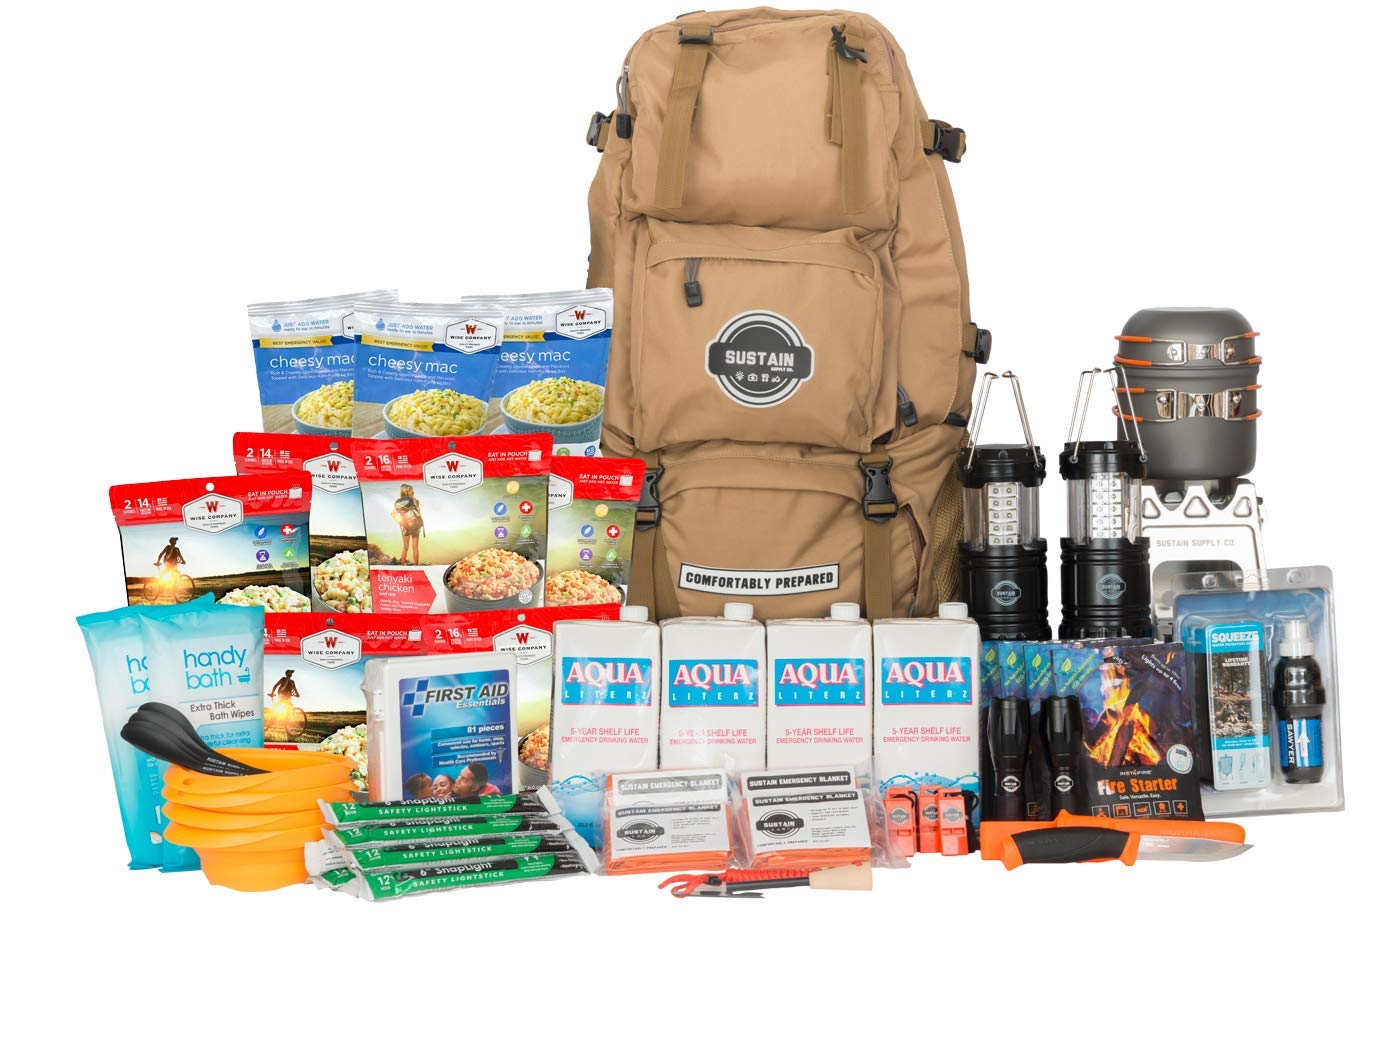 Sustain Supply Premium Family Emergency Survival Bag//Kit Be Equipped with 72 Hours of Disaster Preparedness Supplies for 4 People